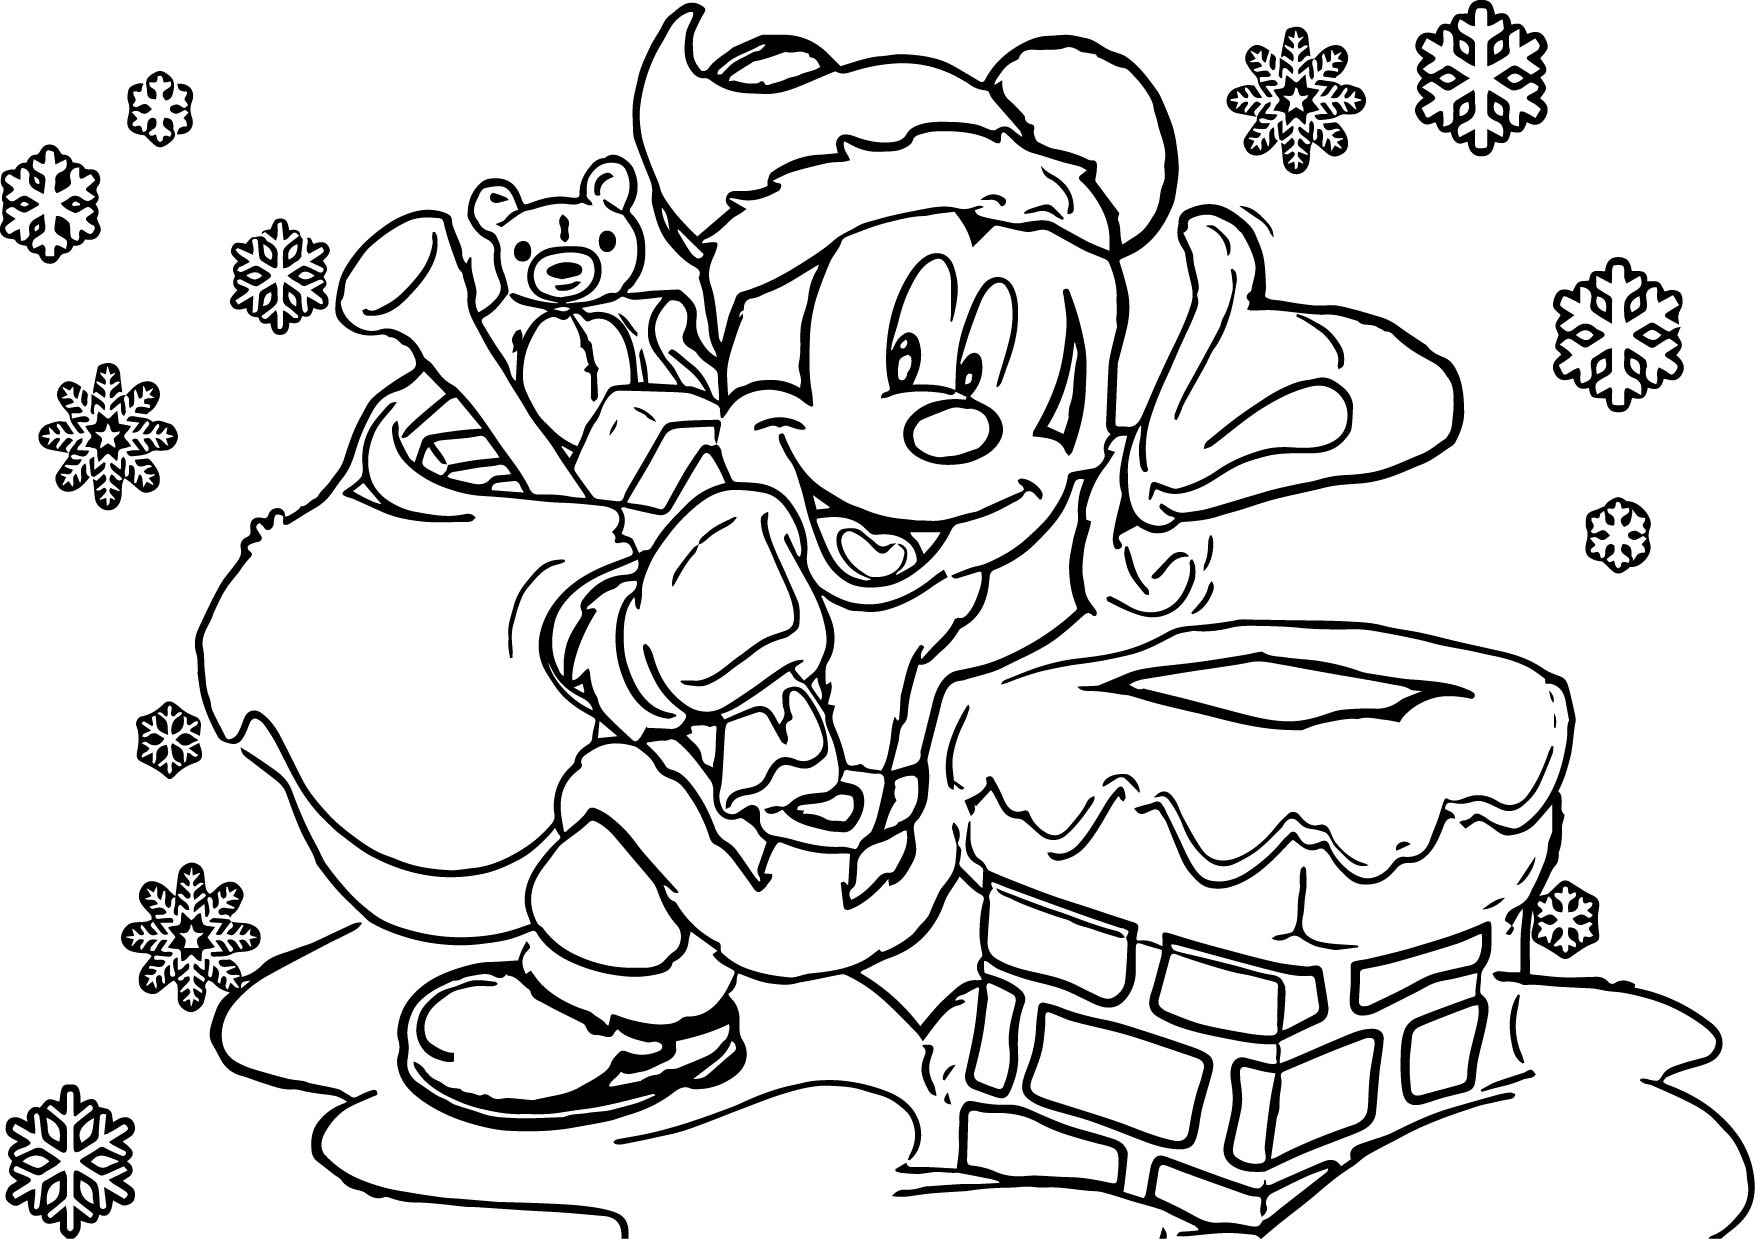 Disney Coloring Pages Online